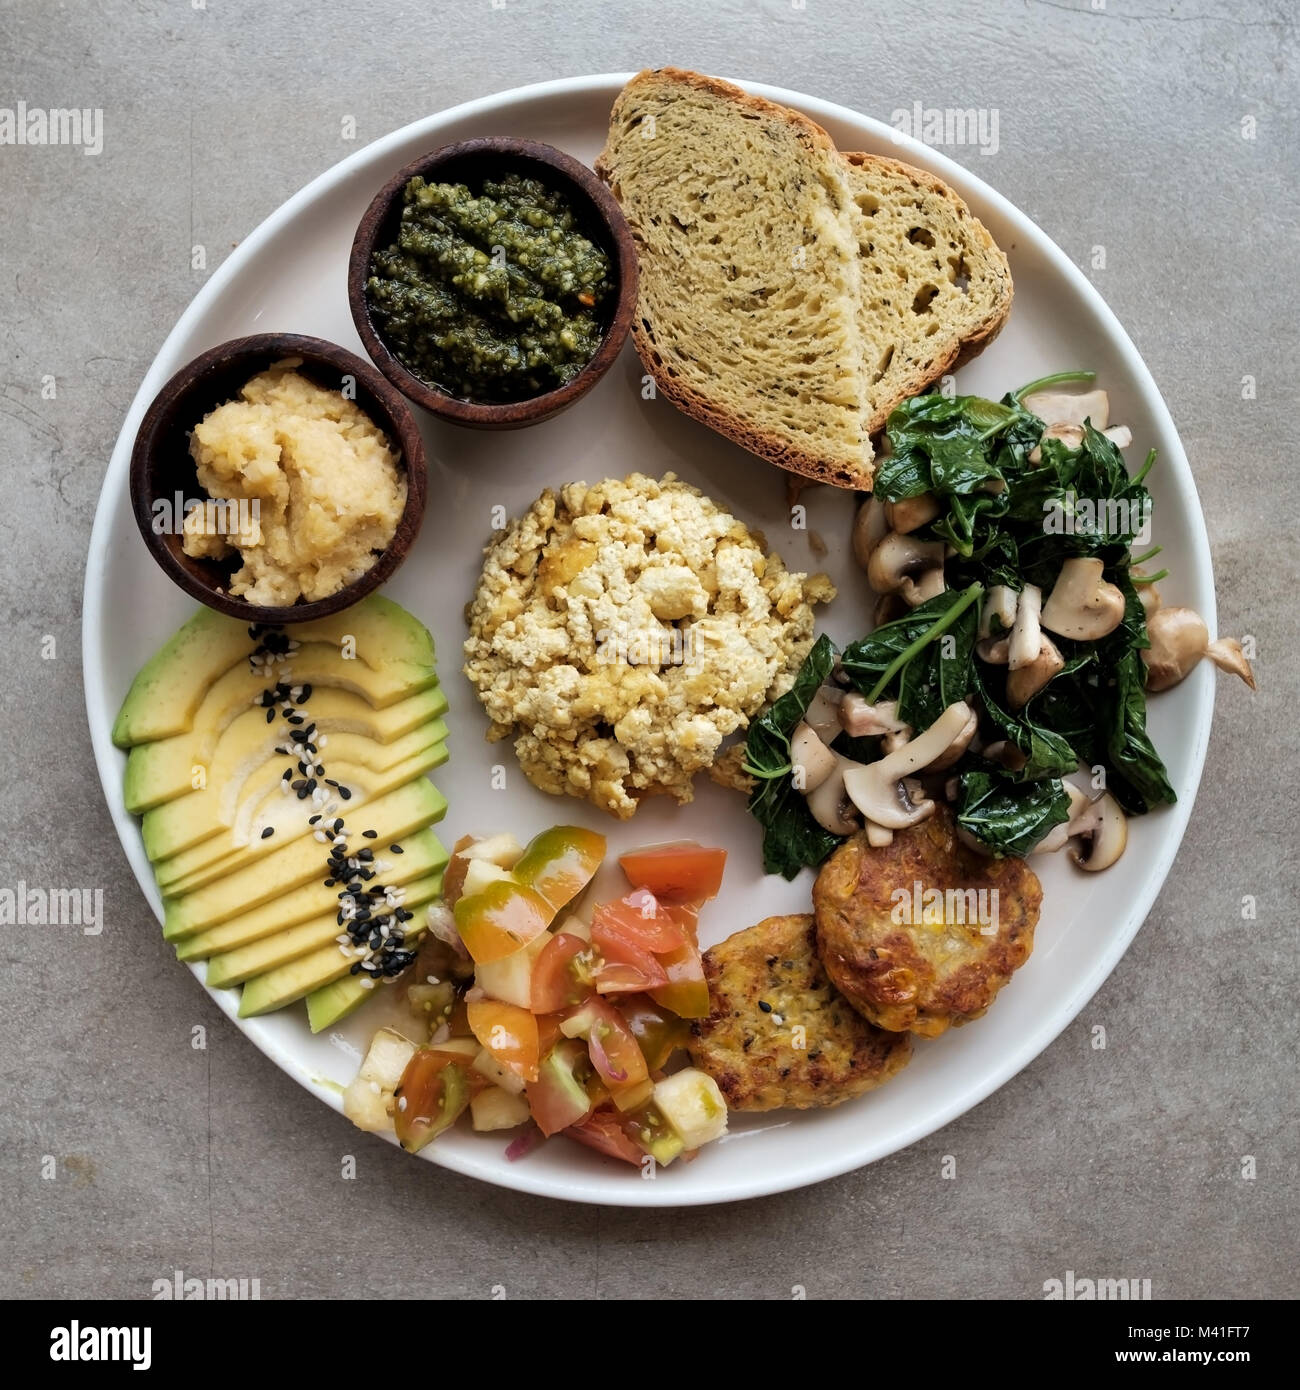 Vegan tofu with avocado, bread, vegetables and source close-up on a plate. - Stock Image